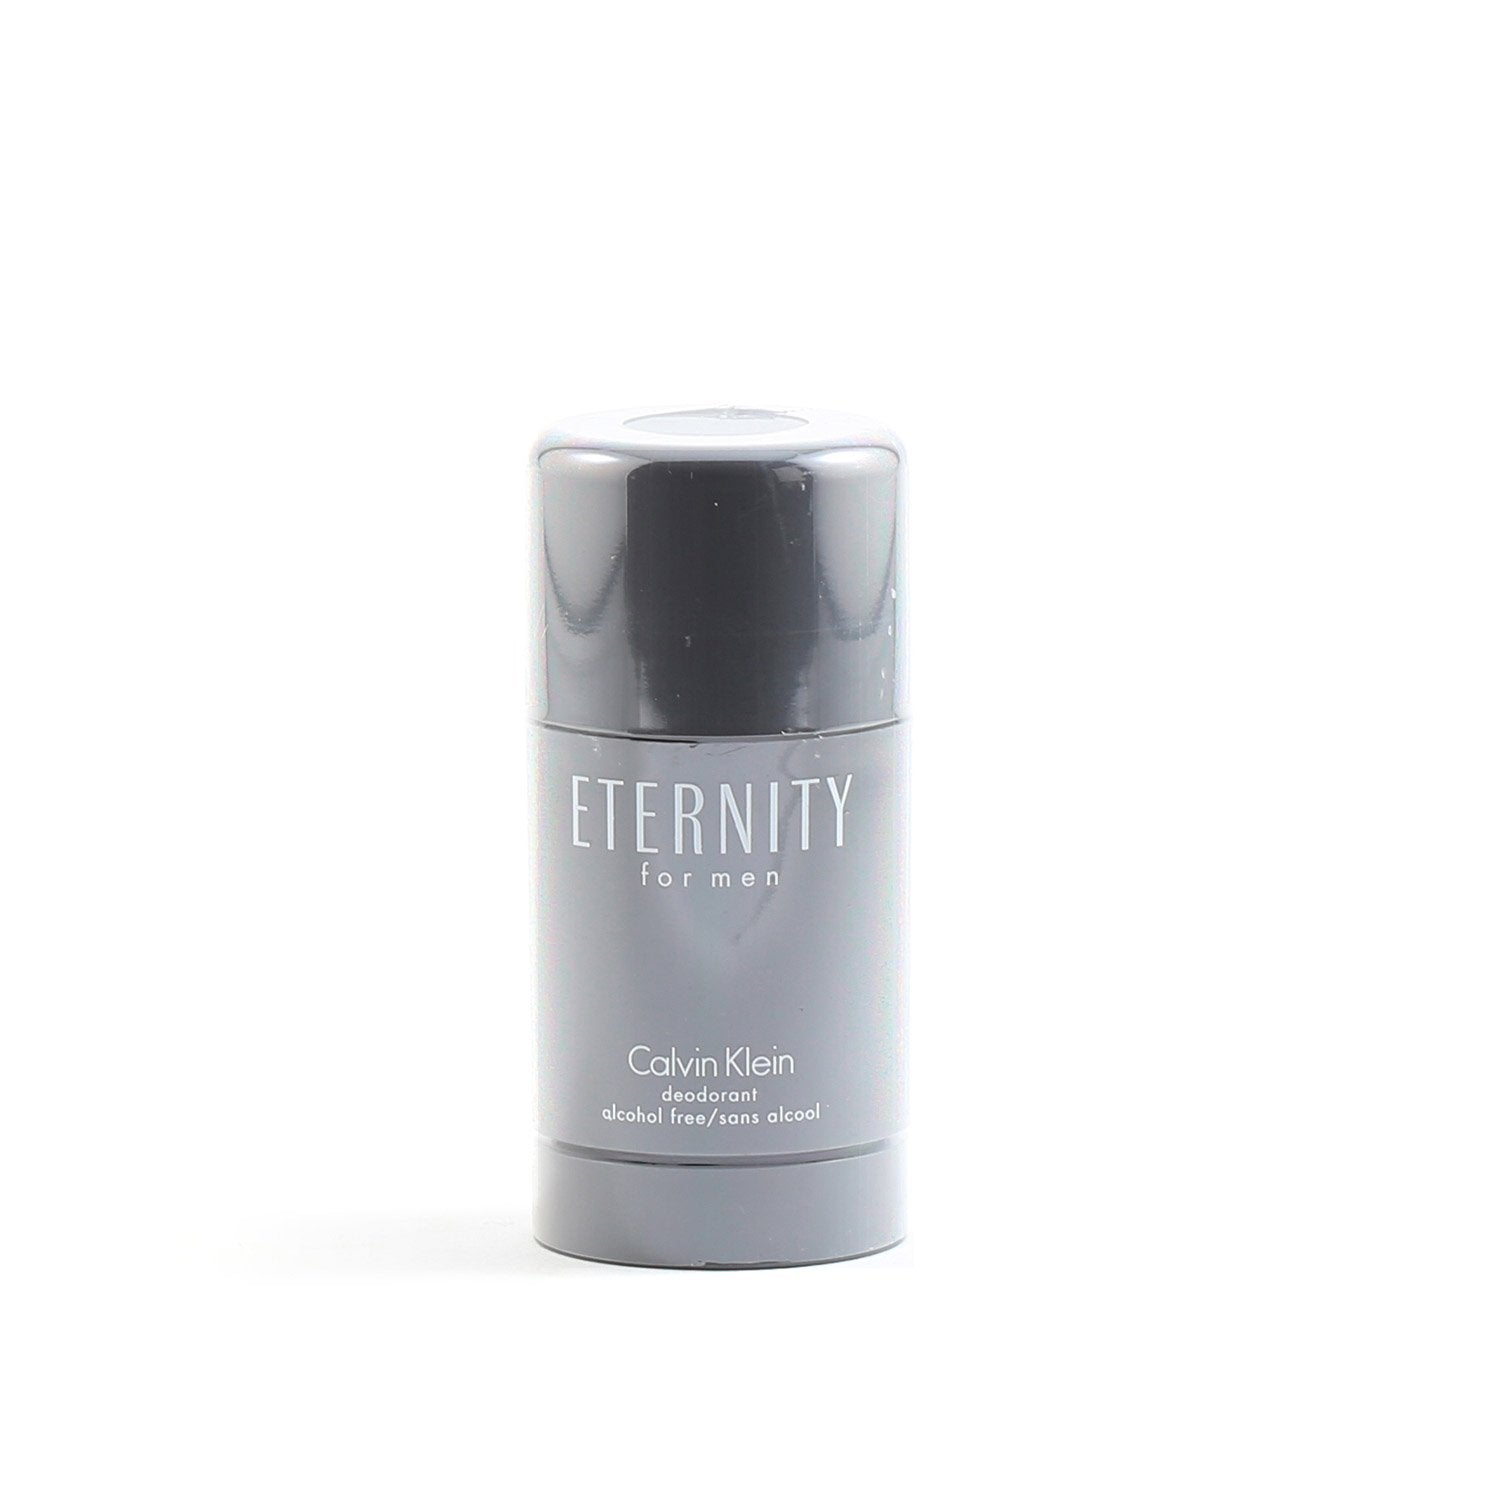 Deodorant - ETERNITY FOR MEN BY CALVIN KLEIN - DEODORANT STICK, 2.6 OZ